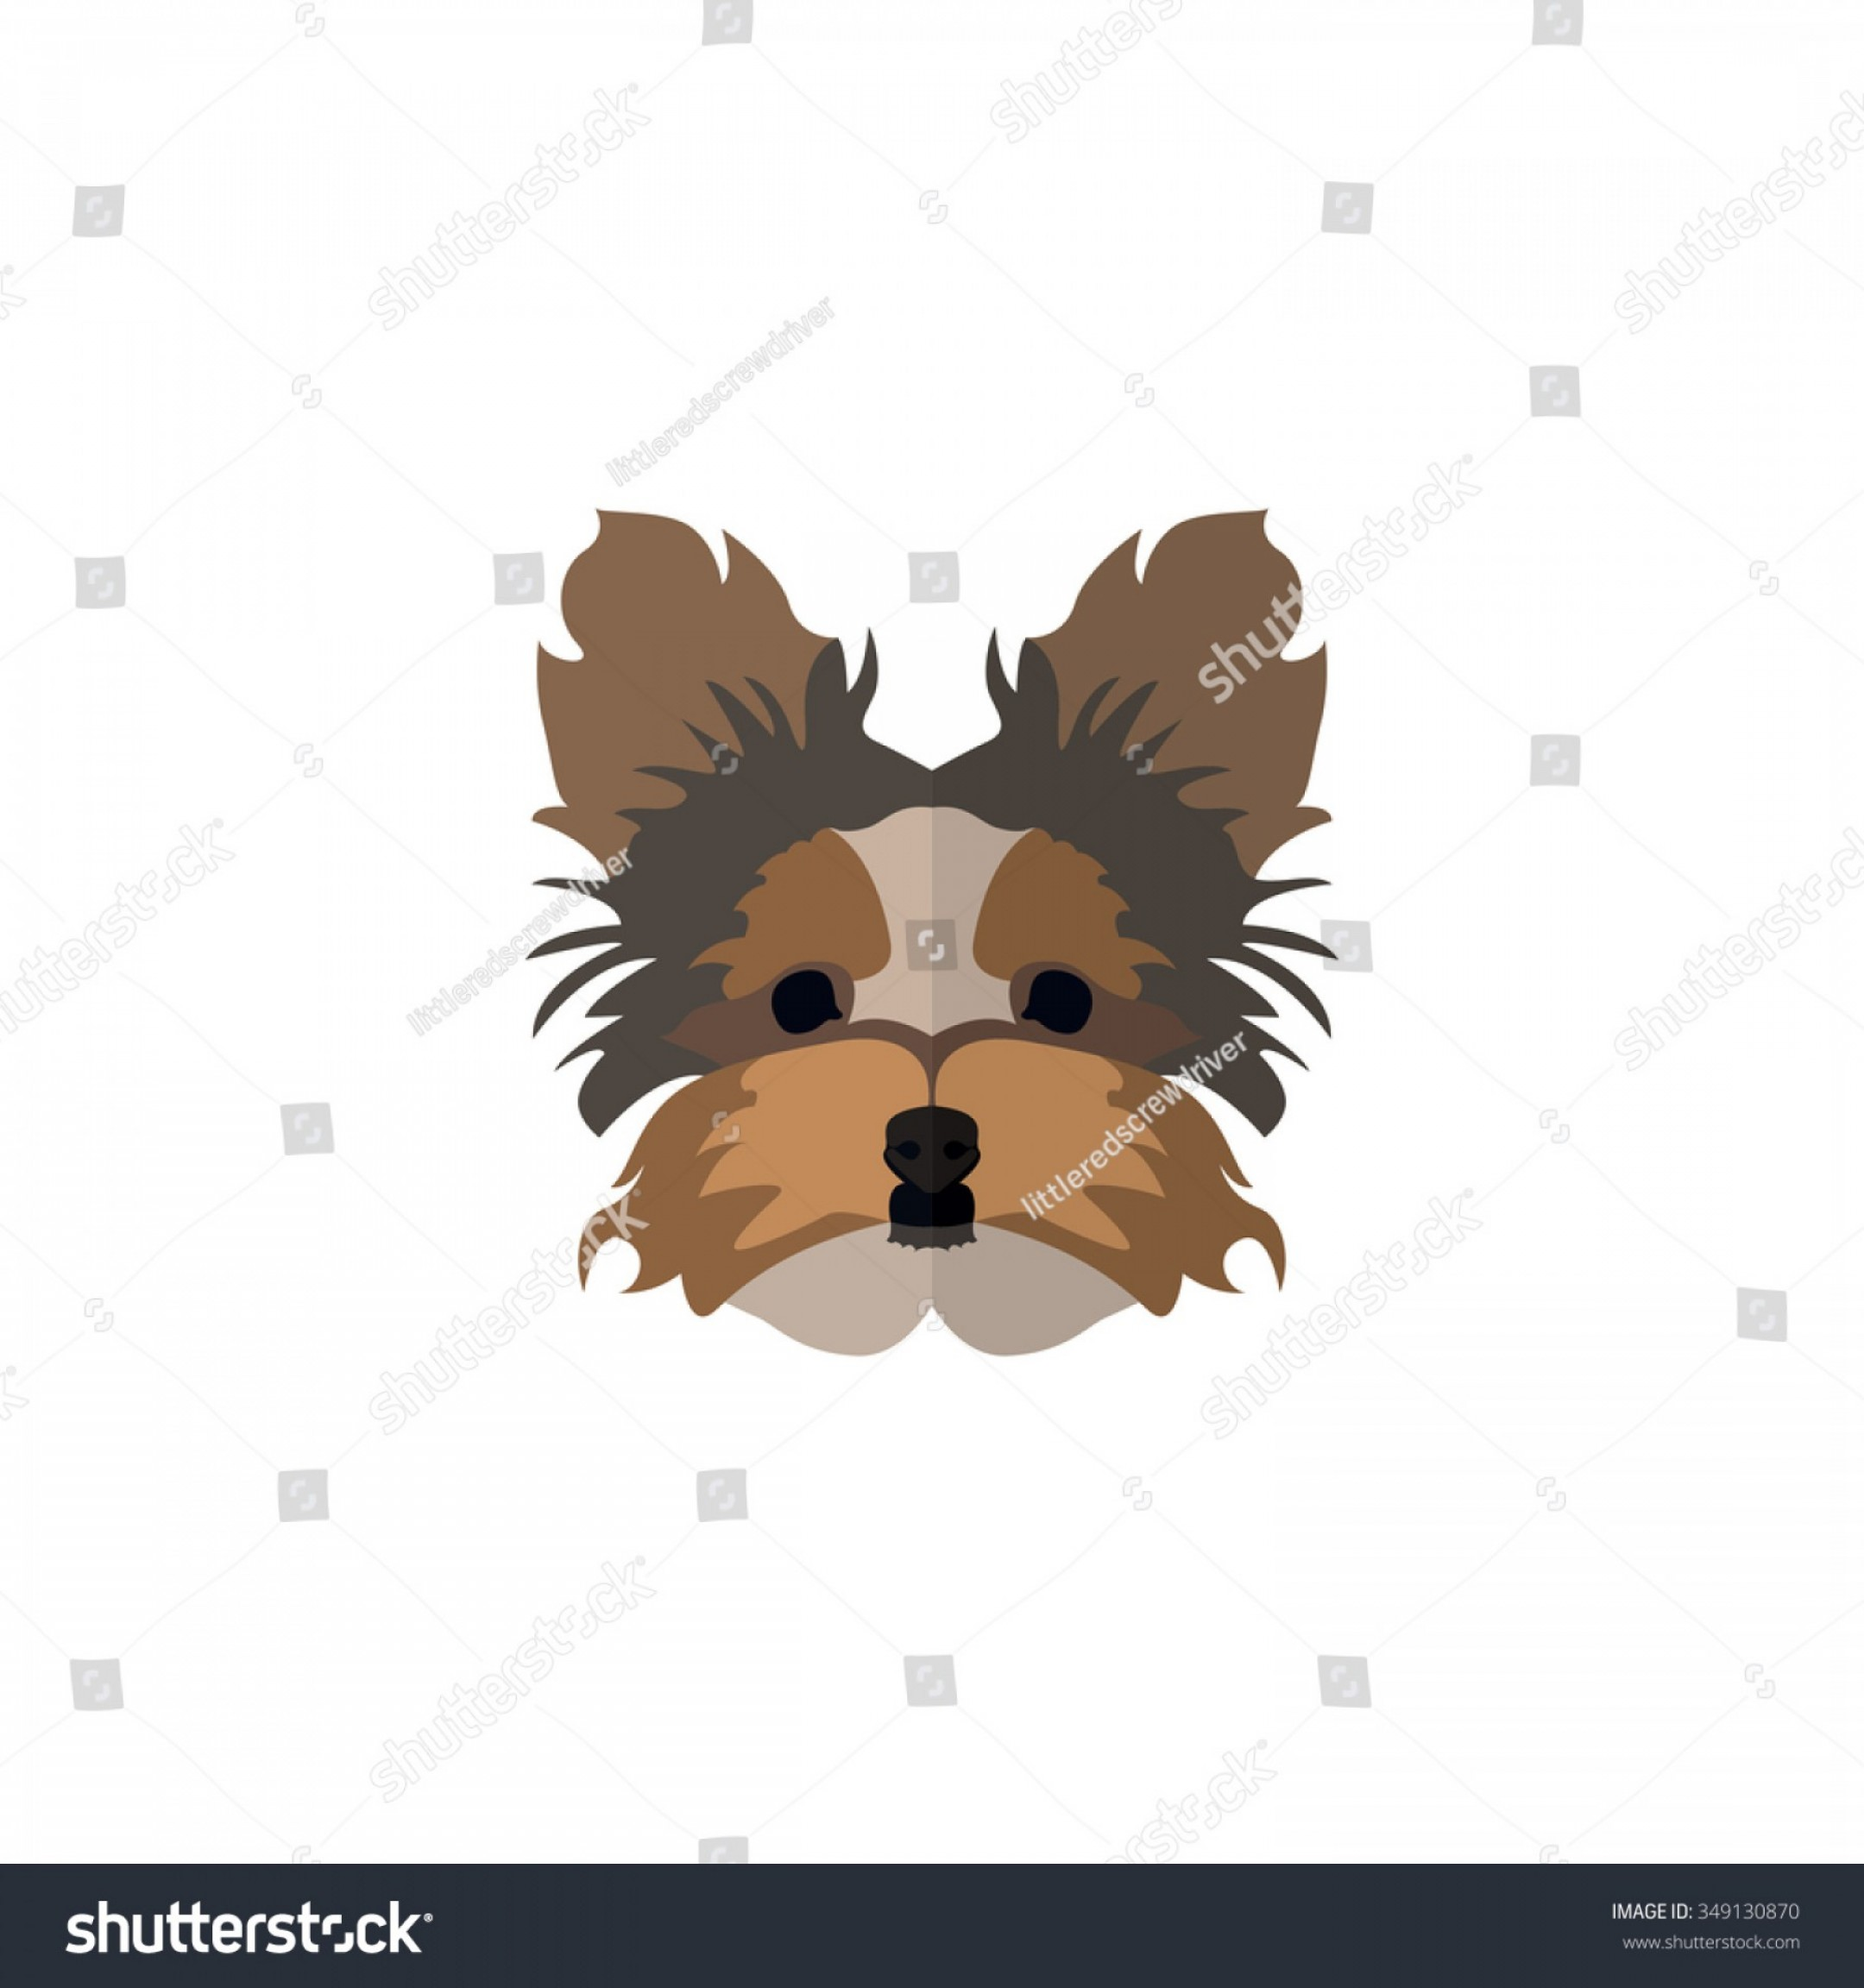 Cute Yorkie Dog Vector: Dog Face Flat Style Yorkshire Terrier